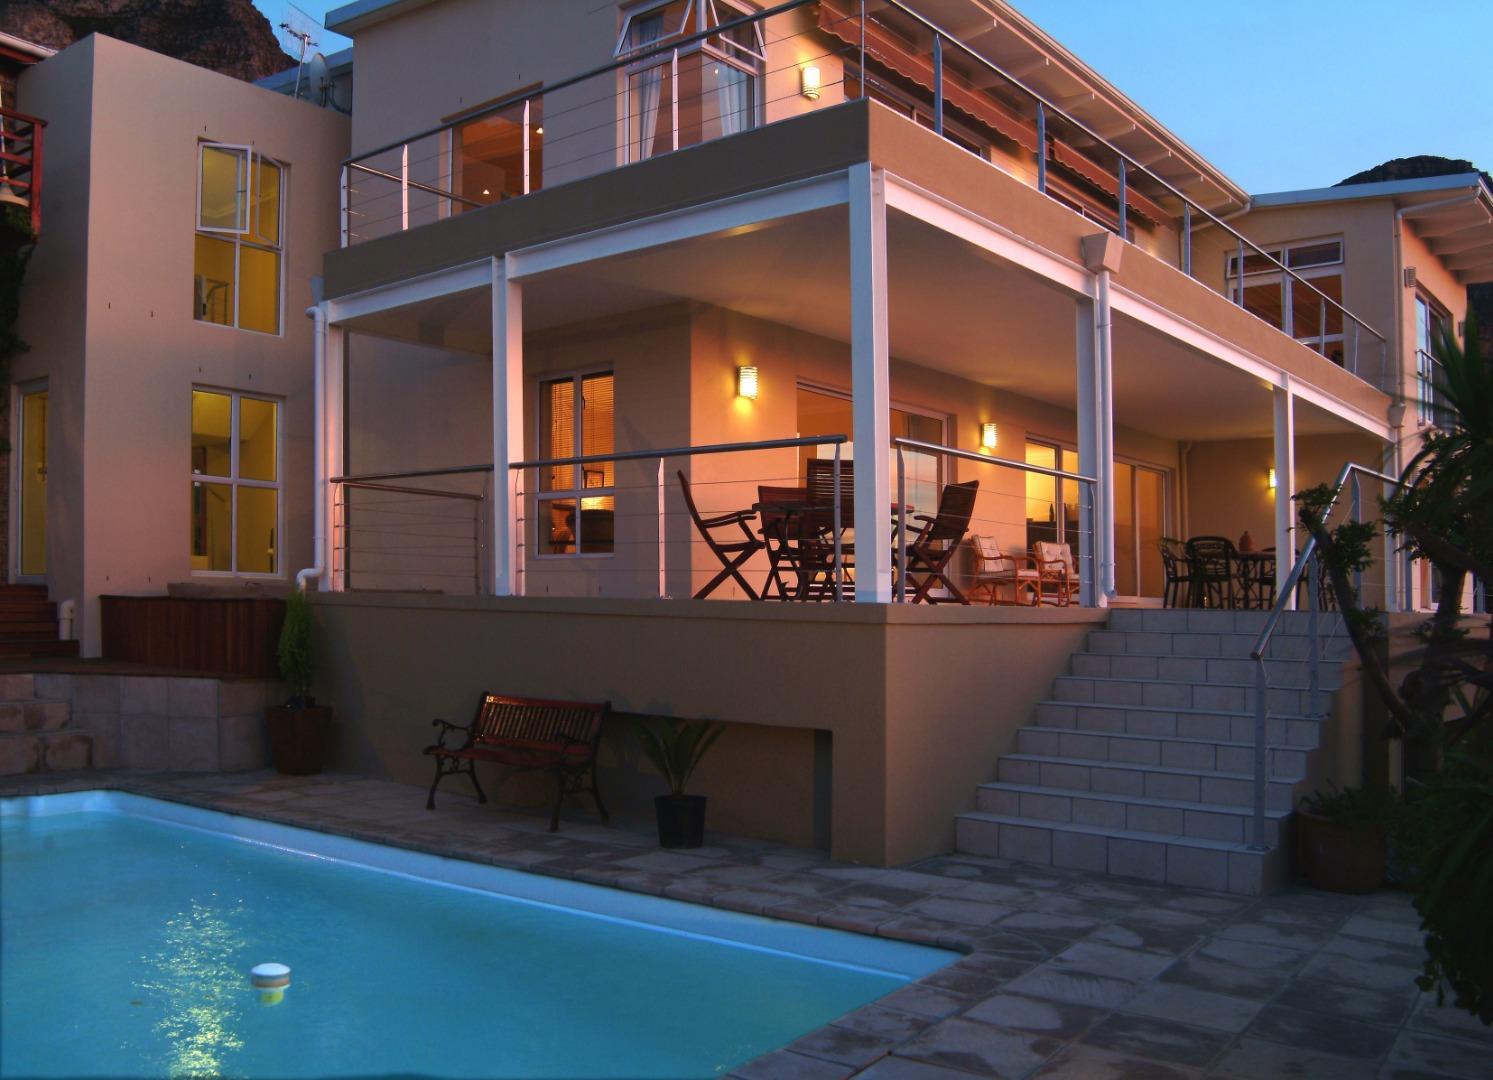 Furnished 3 Bedroom House for Rent in Camps Bay